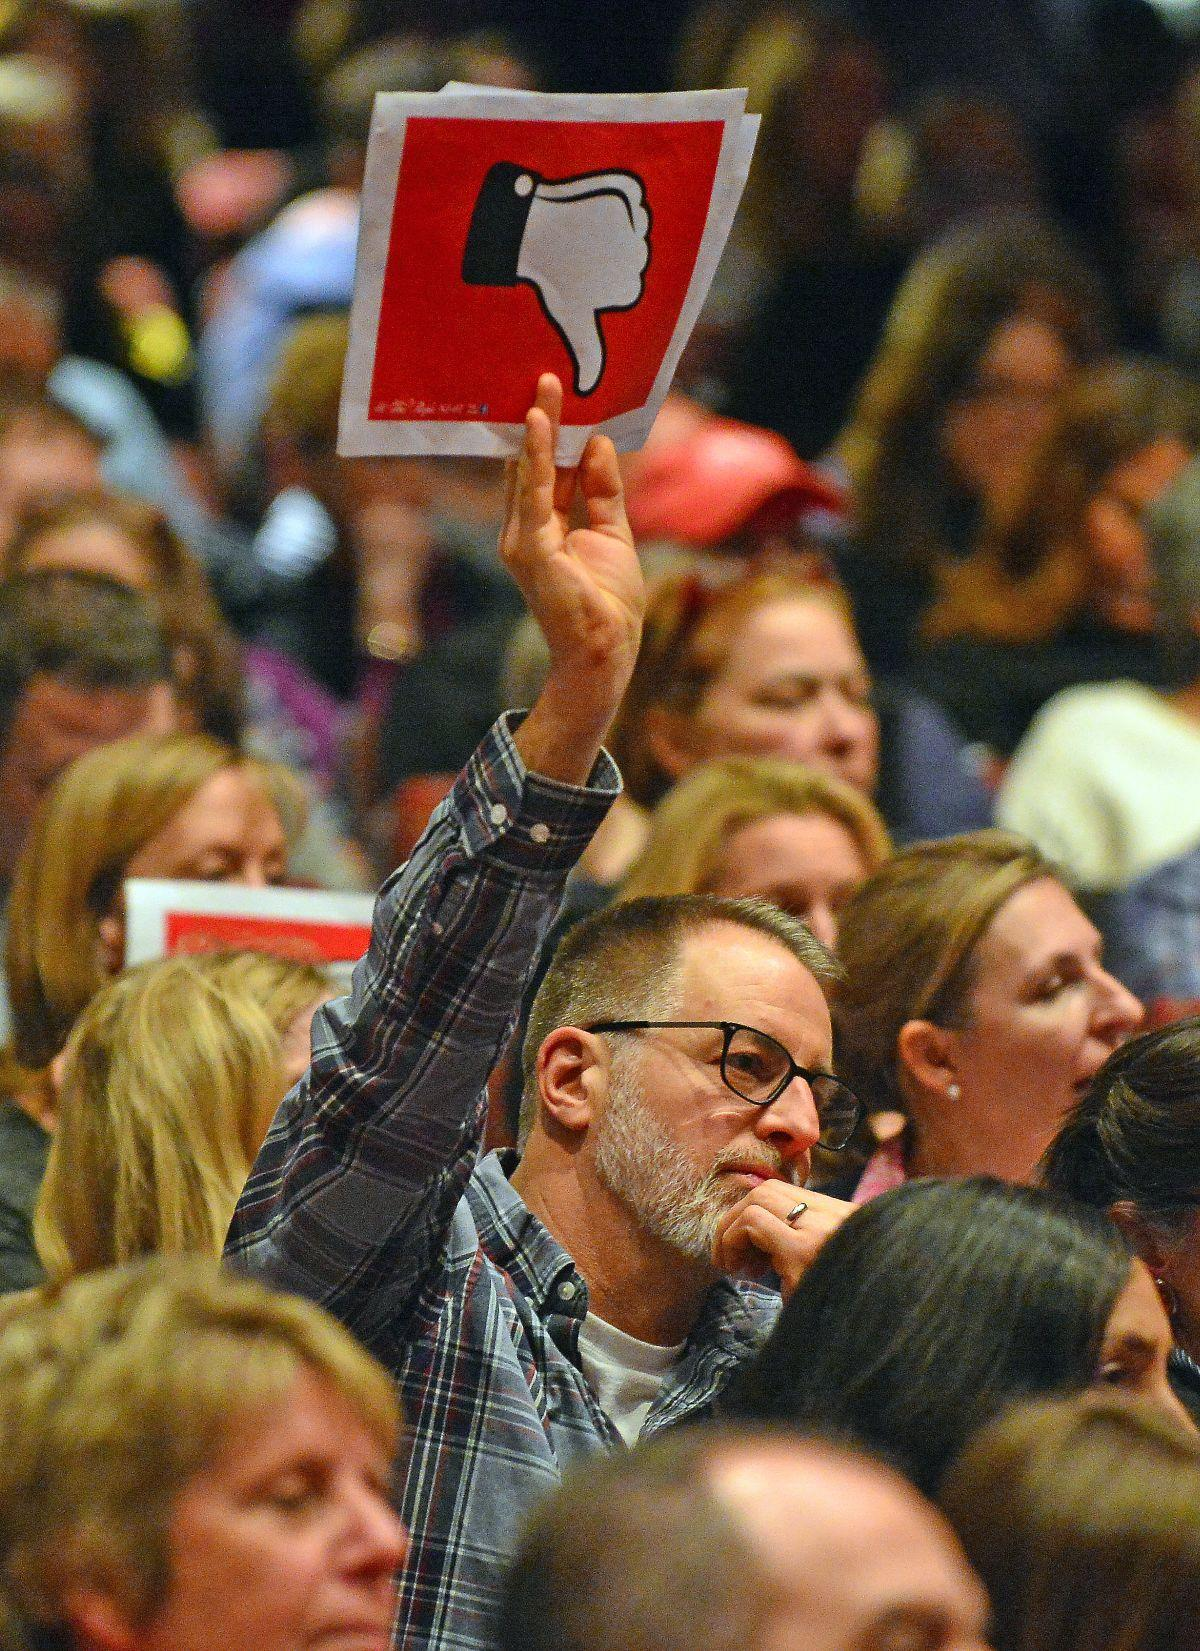 Cheers, boos and shouts greet Rep. Lance at Wednesday's town hall meeting